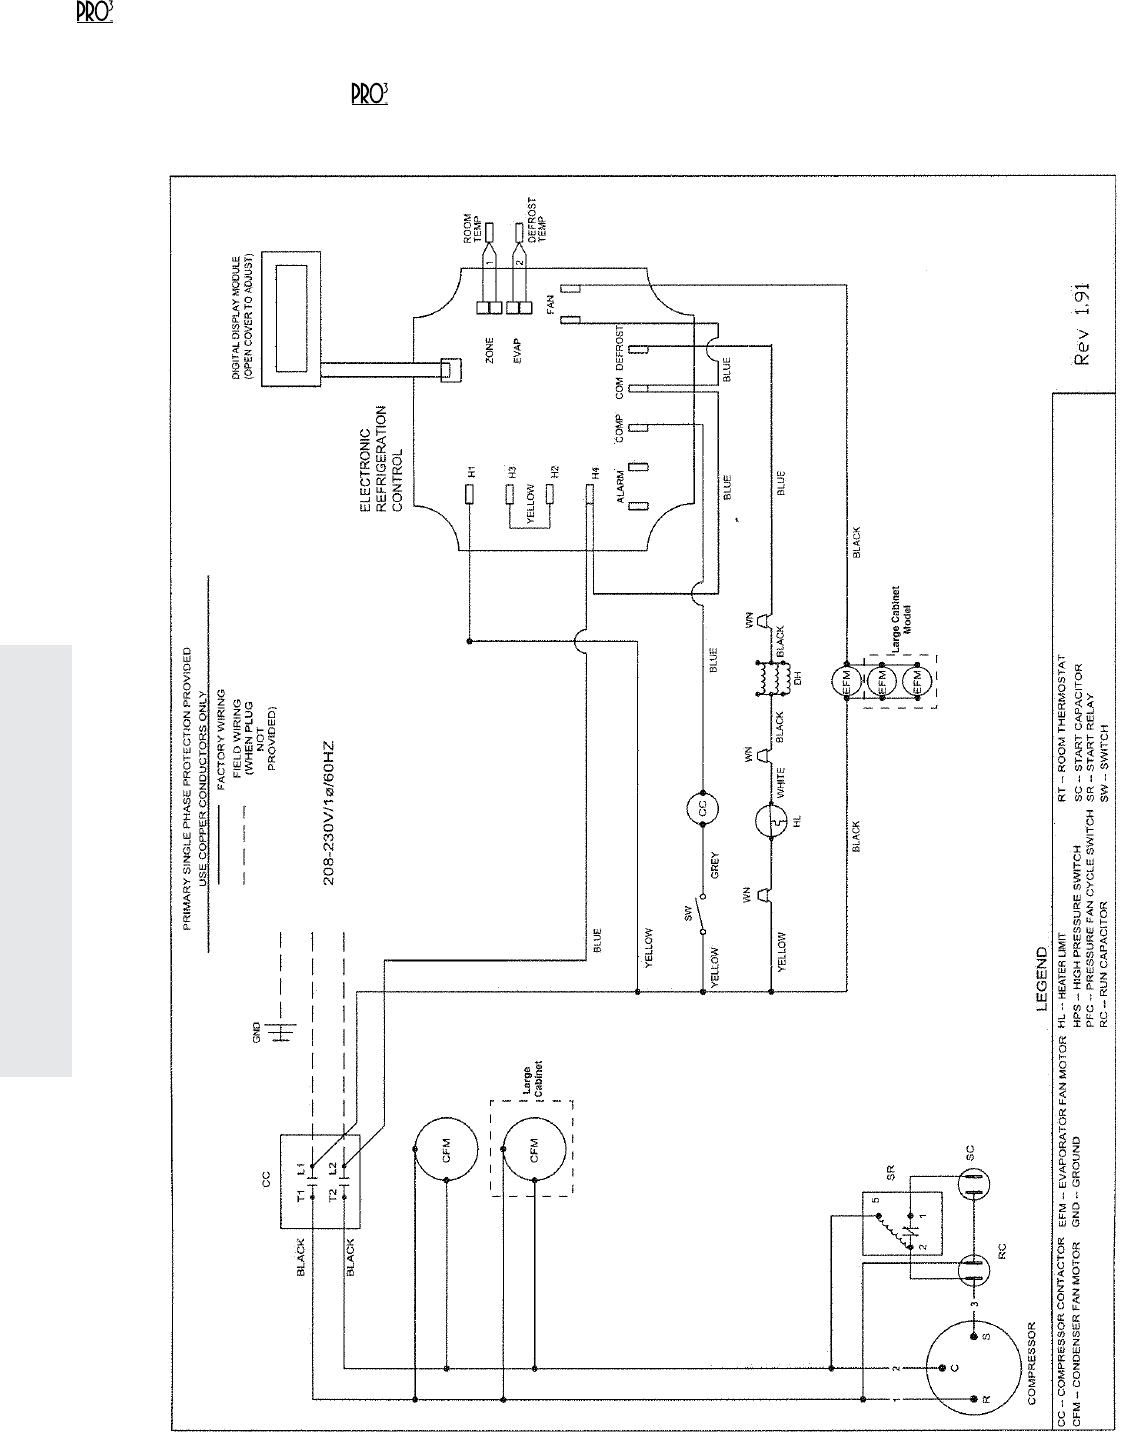 b8616a9a 7649 411a b648 d6245cba7e20 bg10 page 16 of heatcraft refrigeration products refrigerator h im 82b heatcraft wiring diagram at mifinder.co